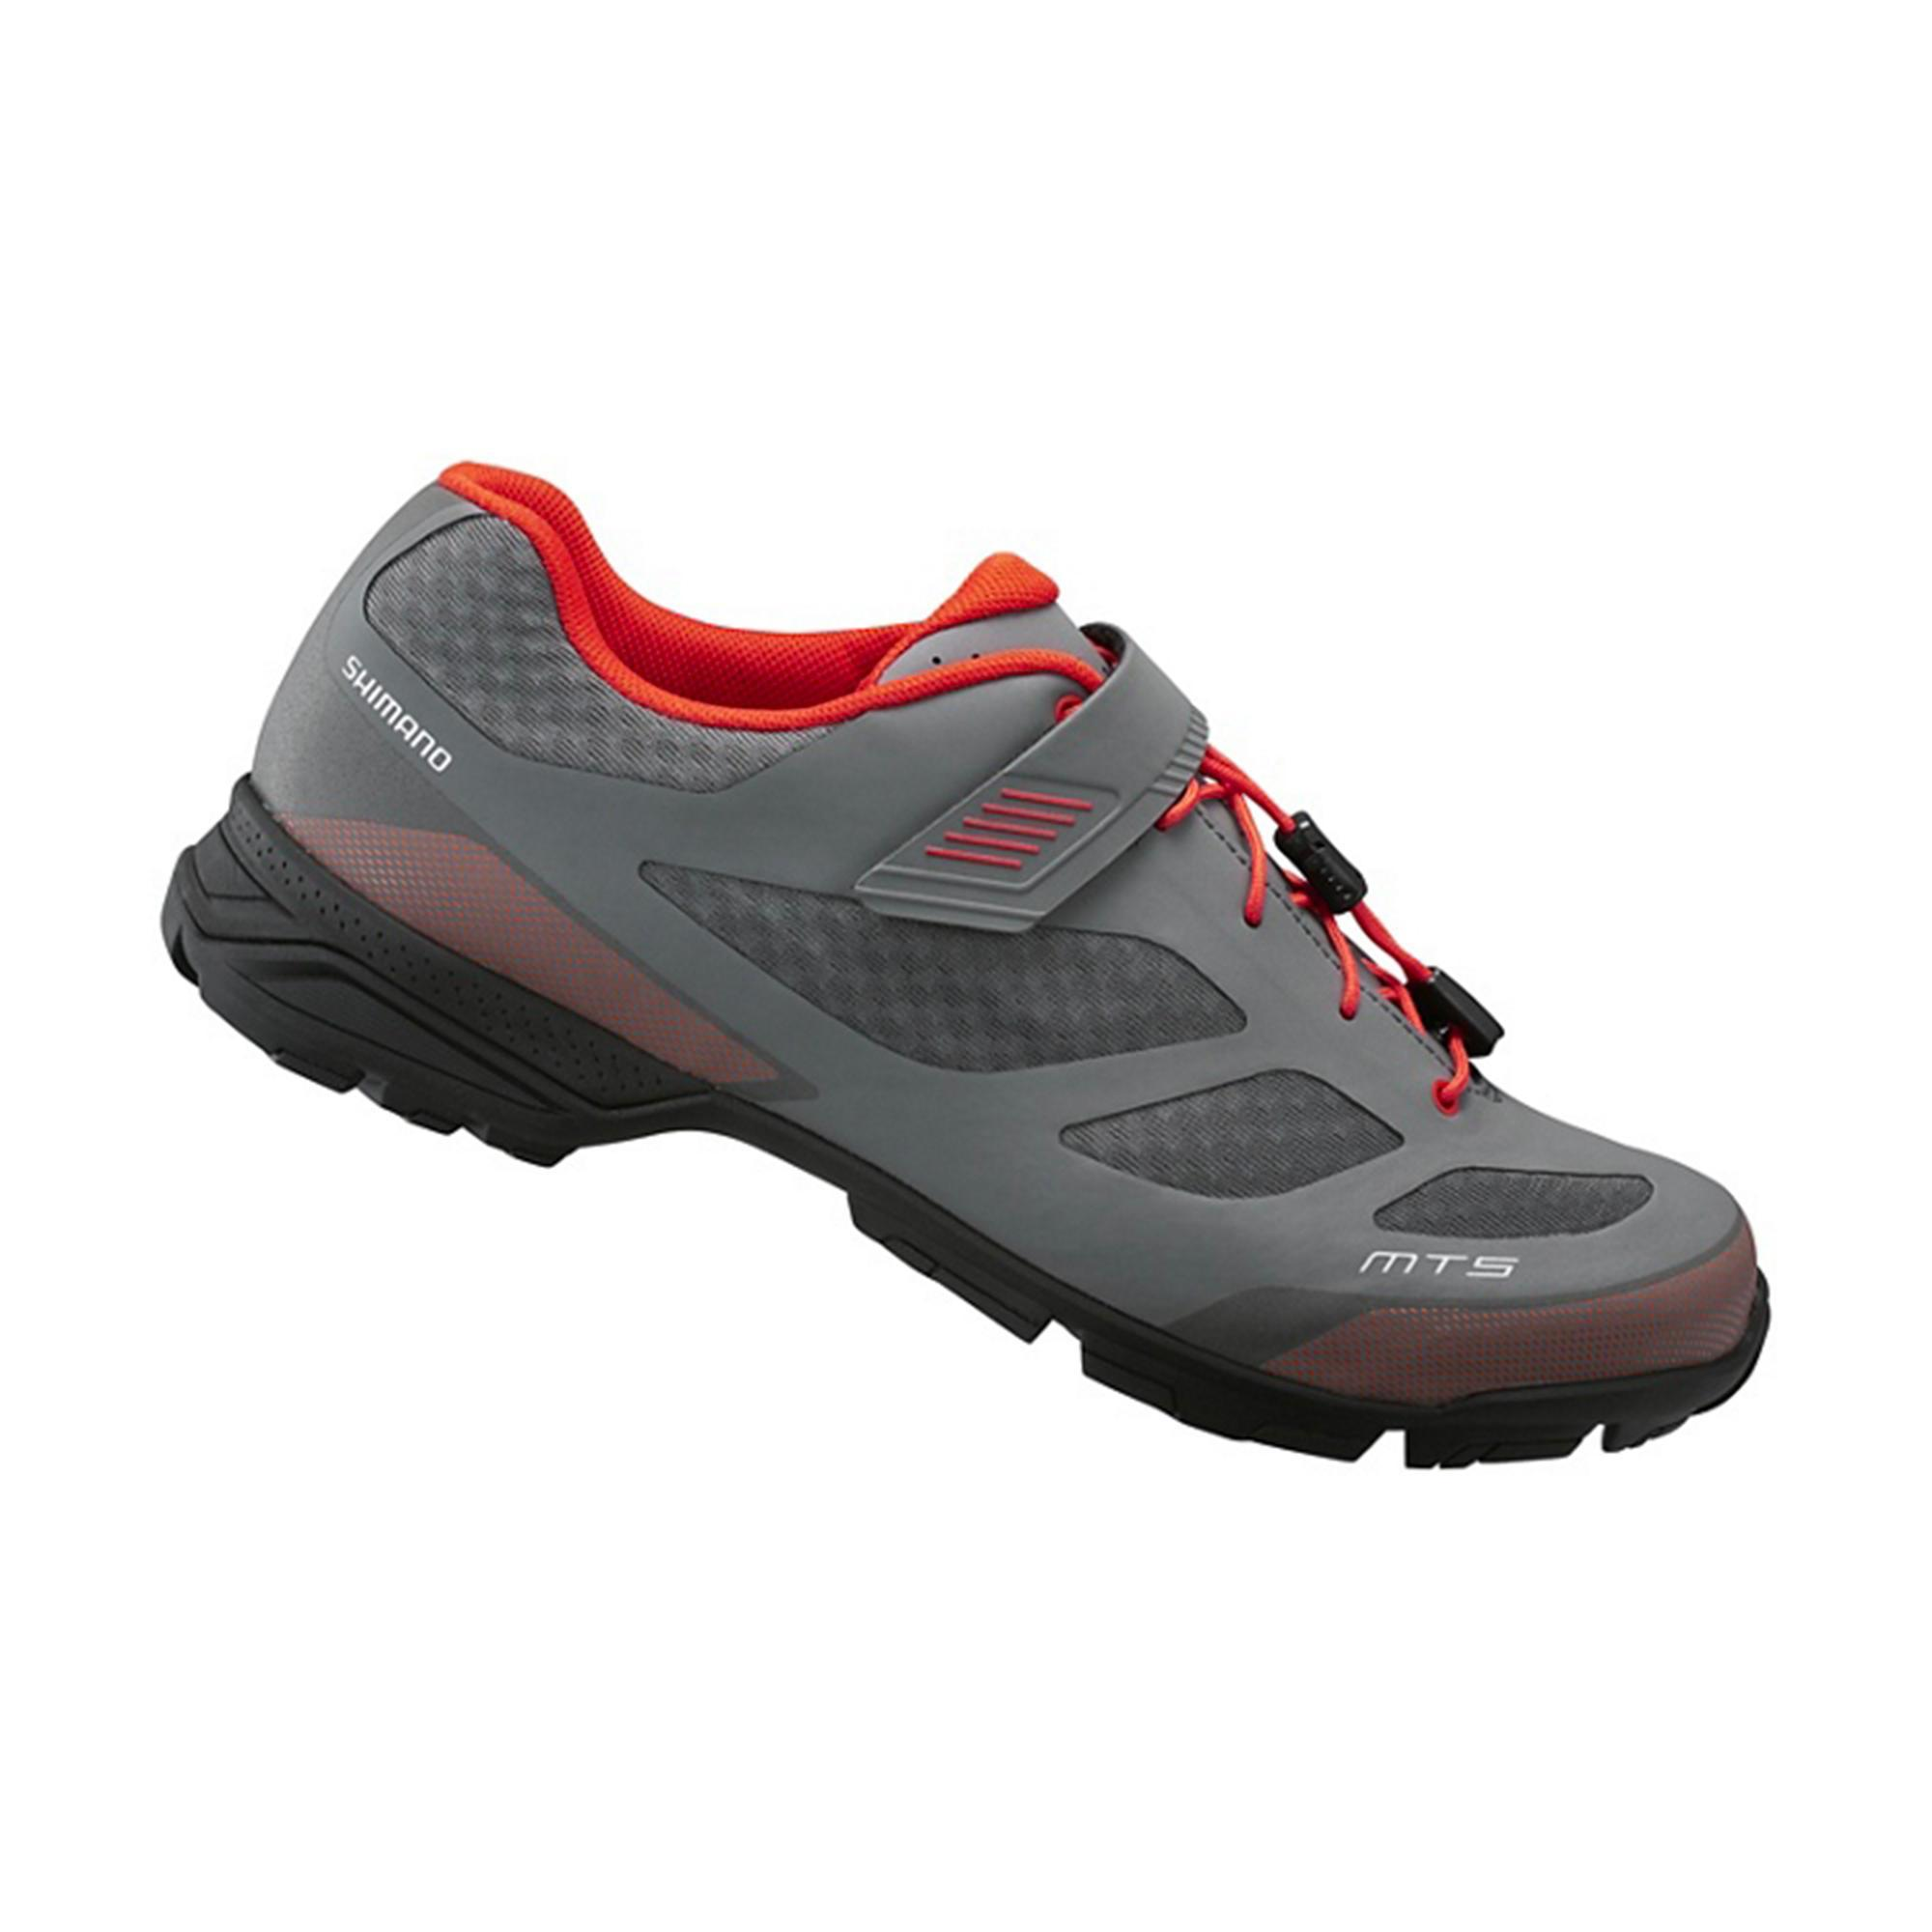 aliexpress really cheap sports shoes CHAUSSURES VTT - nos CHAUSSURES VTT ROCKRIDER au meilleur ...